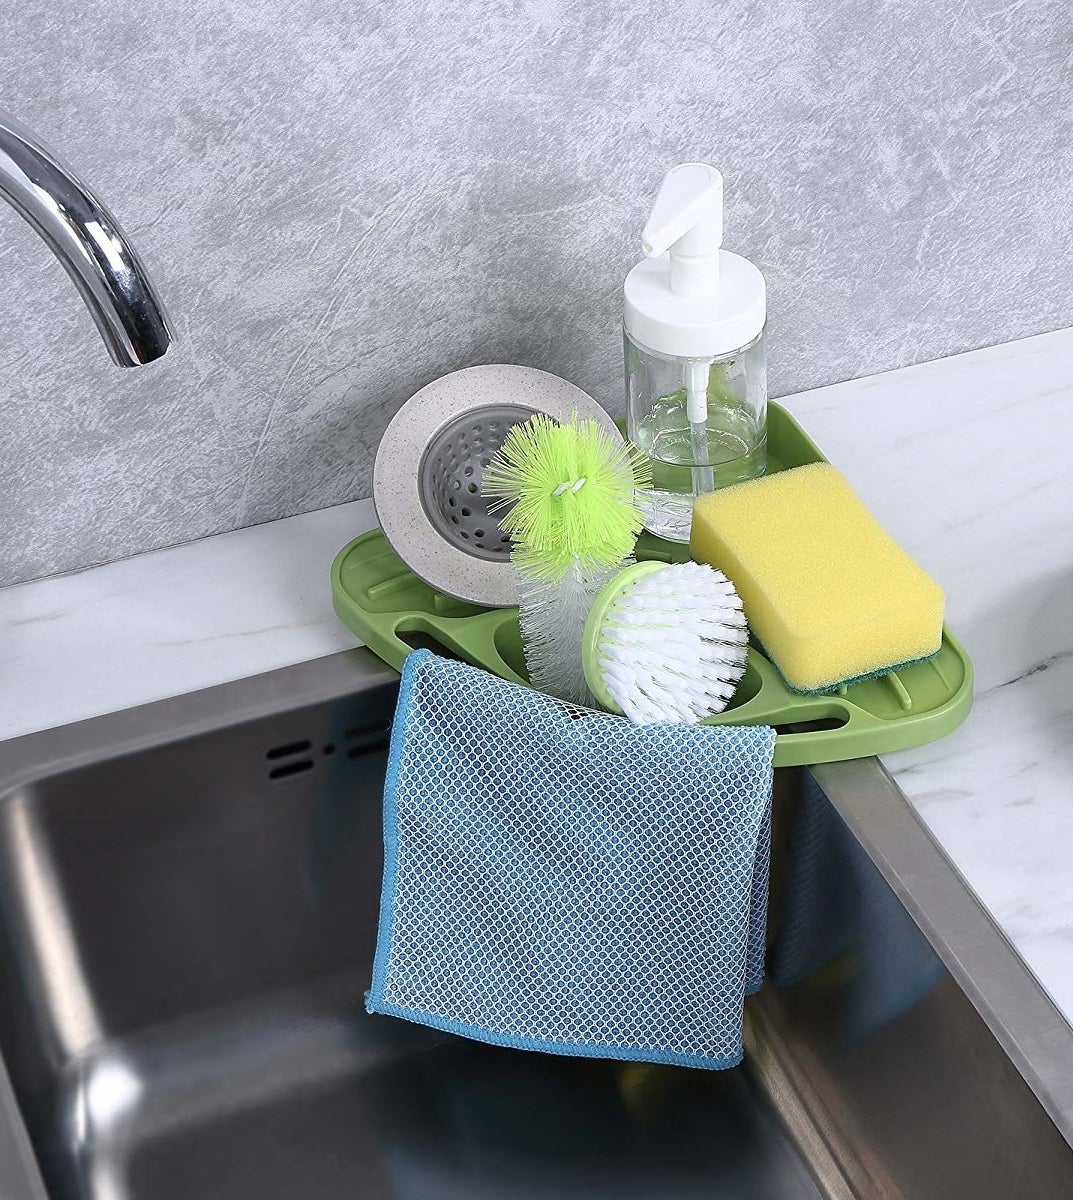 the triangle-shaped green corner tray with drainage area for sponge and soap, over-sink slot for scrub brushes, and small bar to hang dishcloth